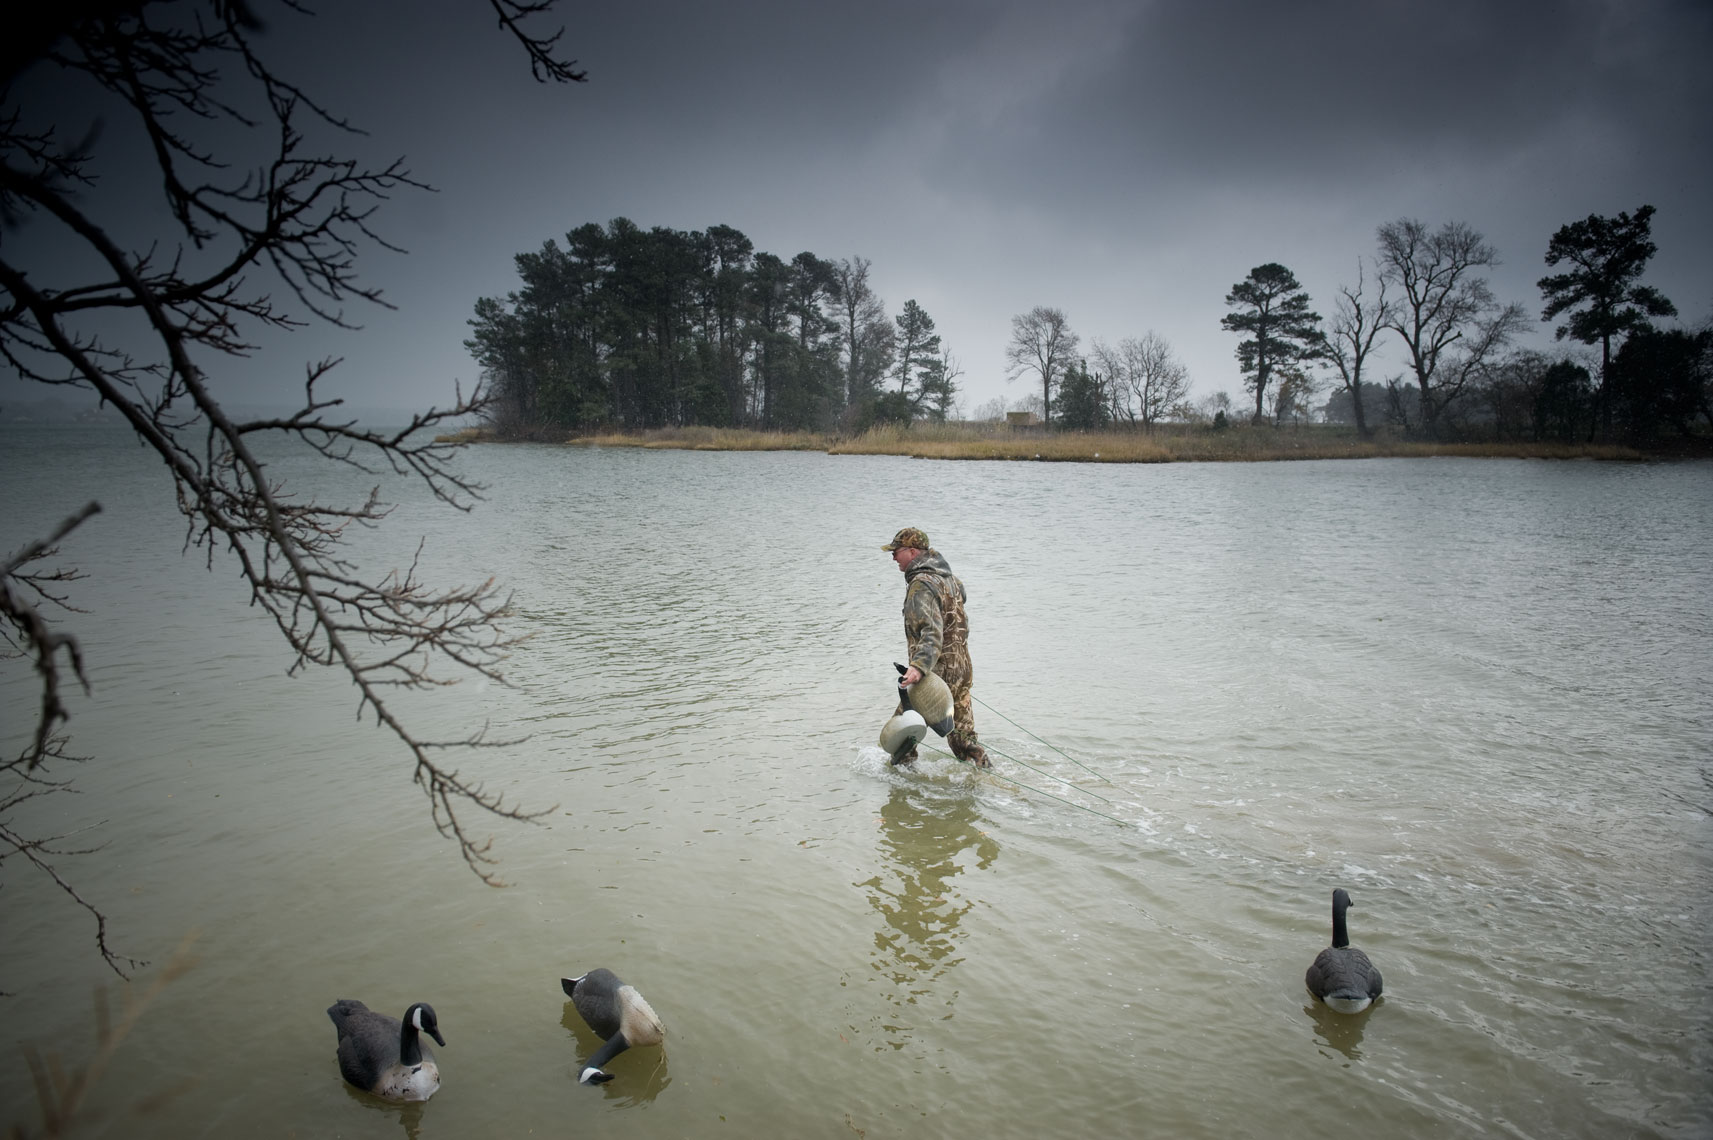 Hunting for waterfowl on the Eastern Shore of Maryland, by Maryland photographer Mike Morgan.